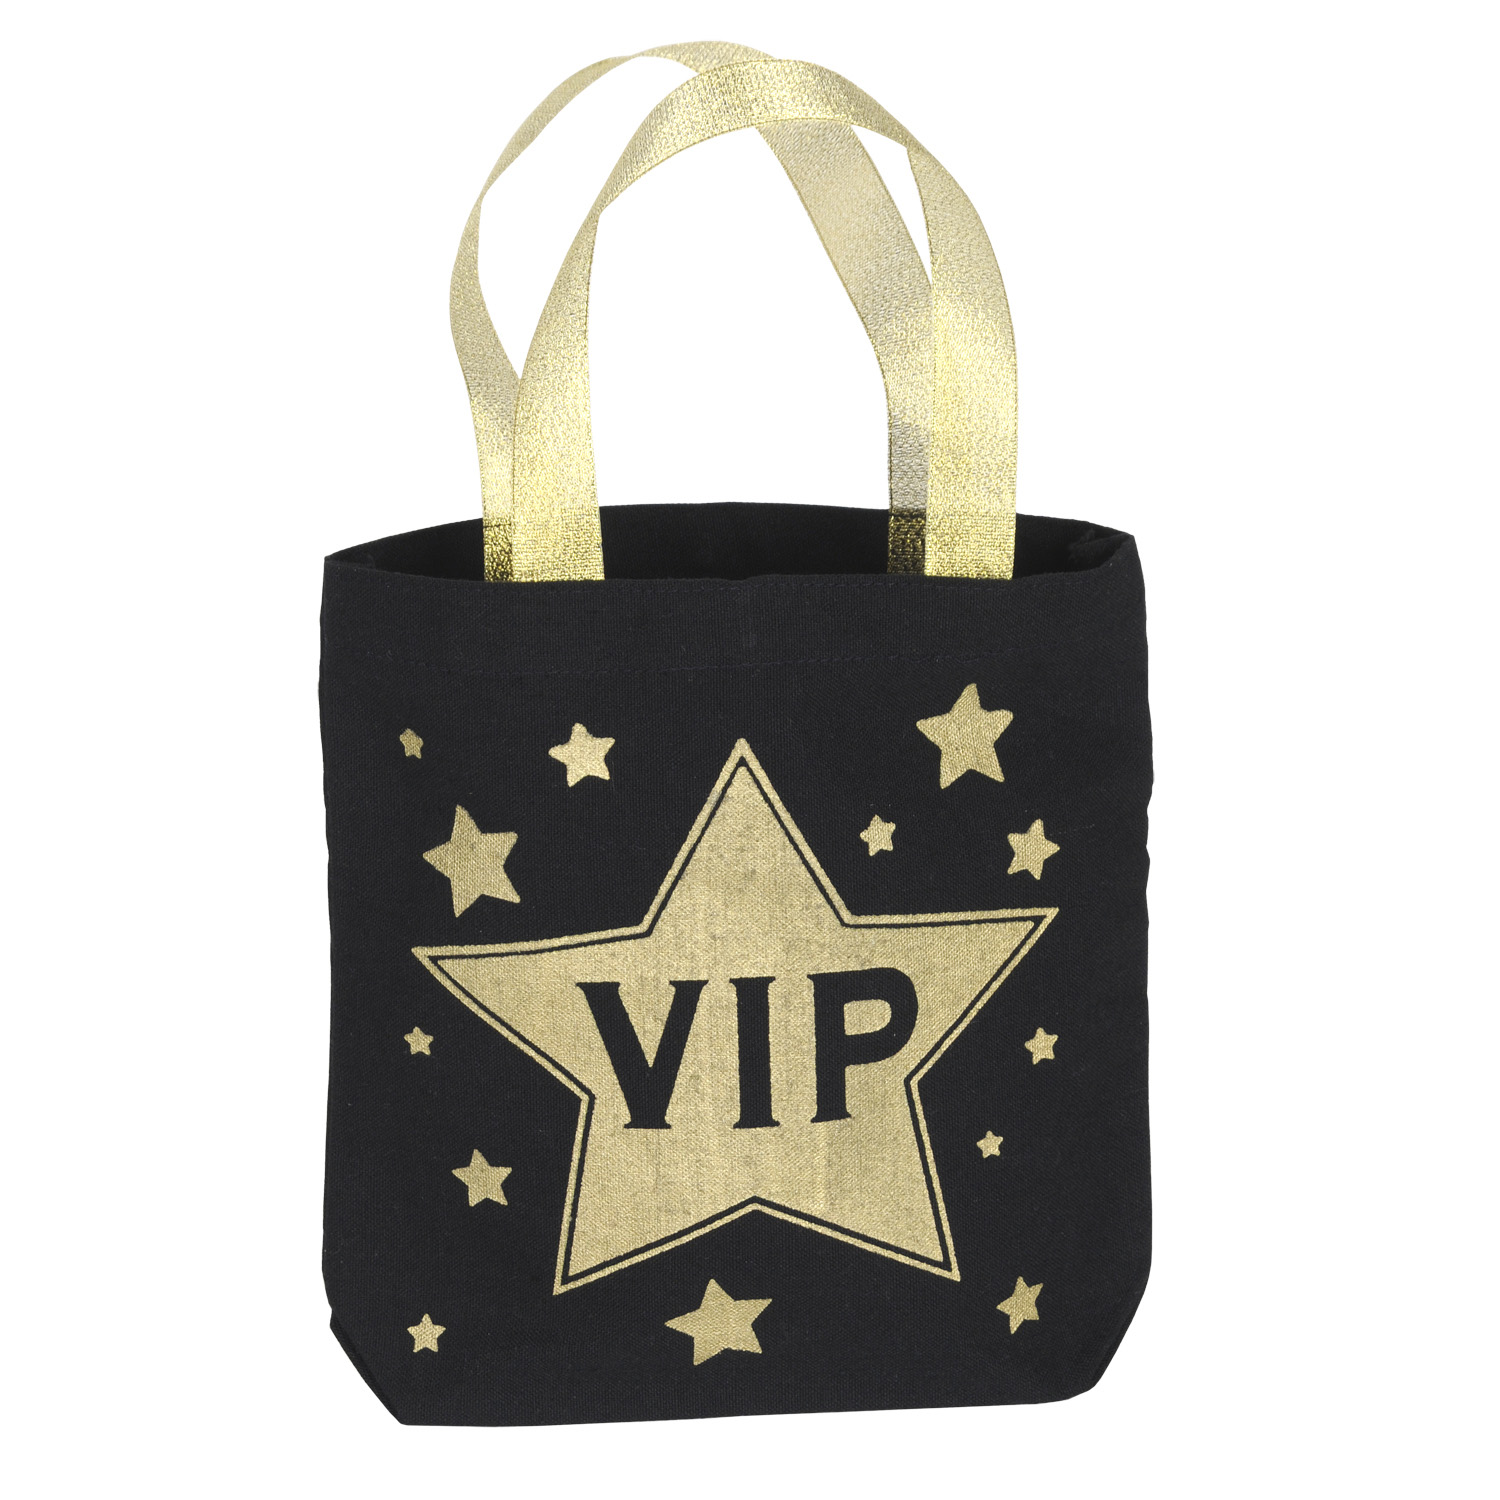 favor bag with gold stars and VIP written inside a large star